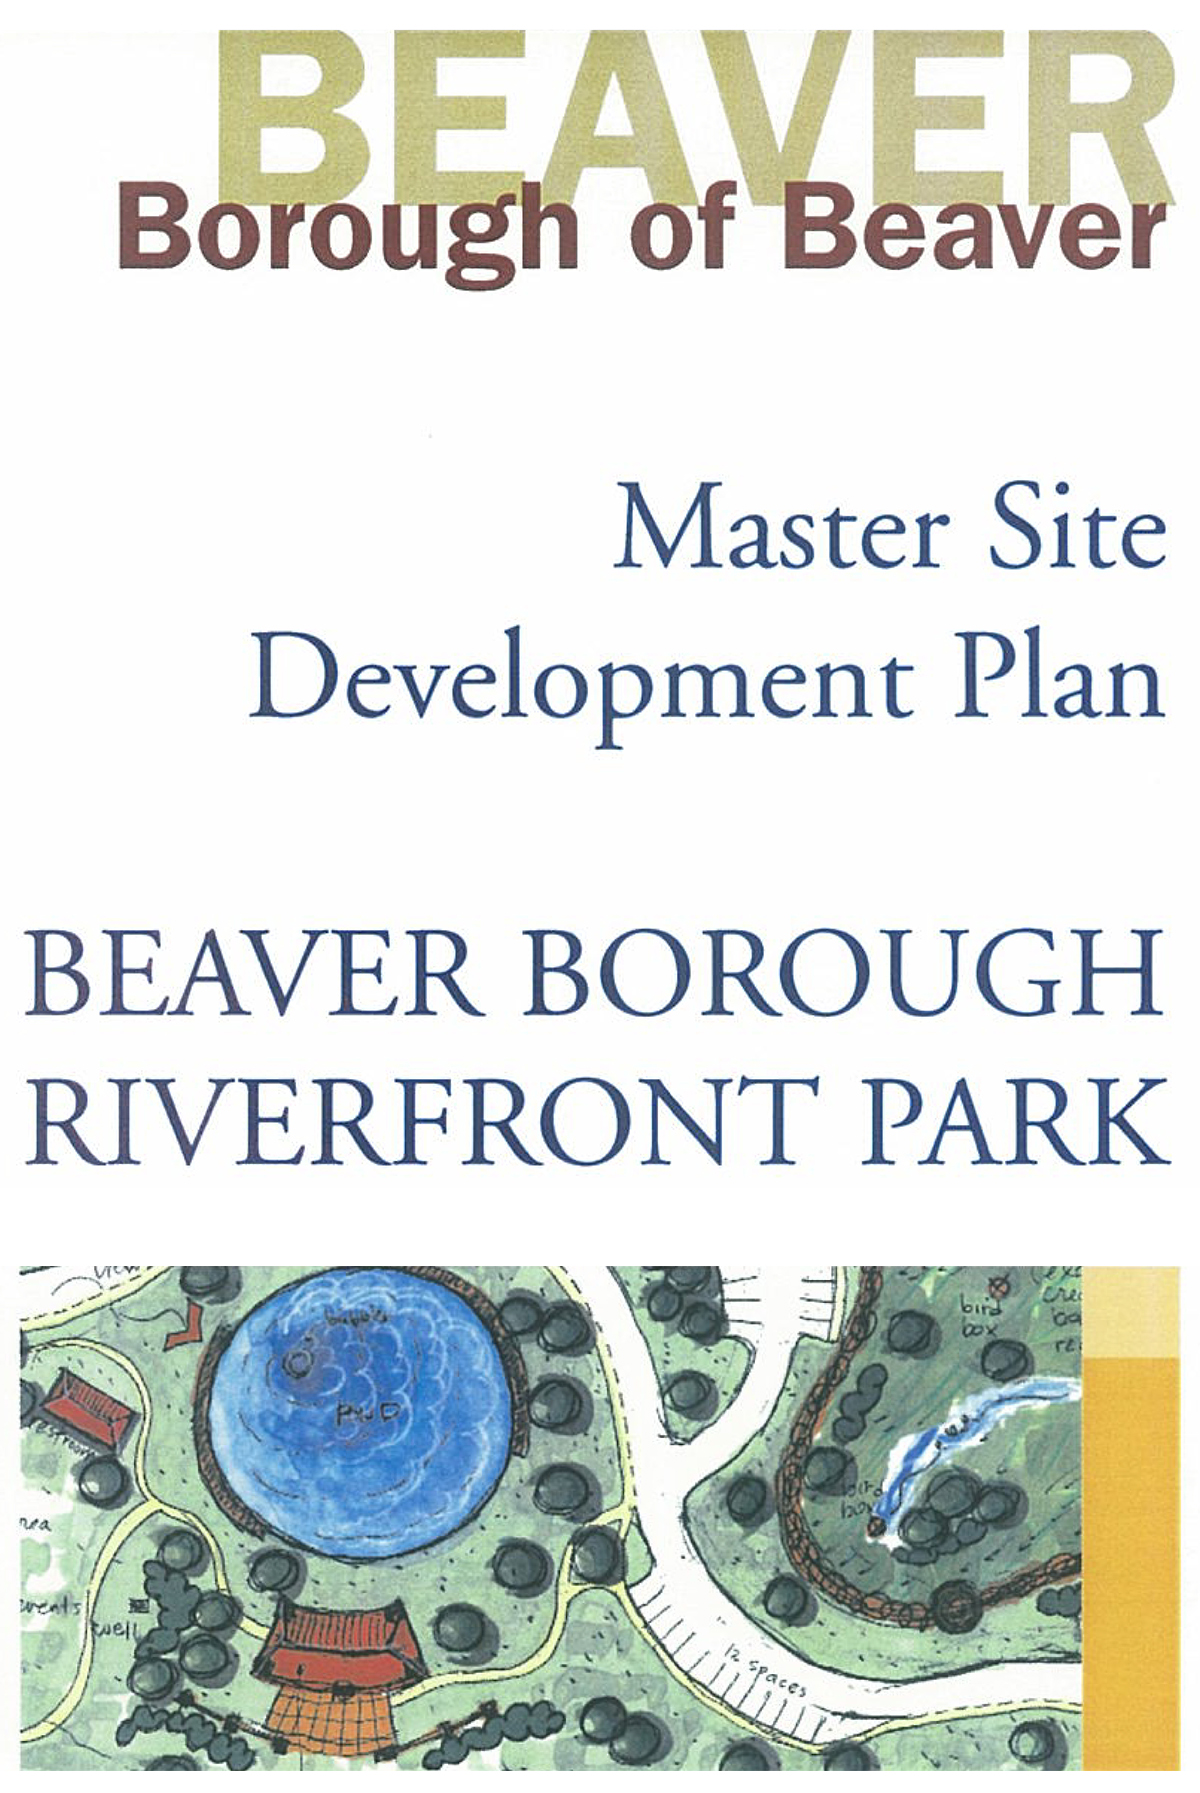 Beaver Borough Riverfront Park